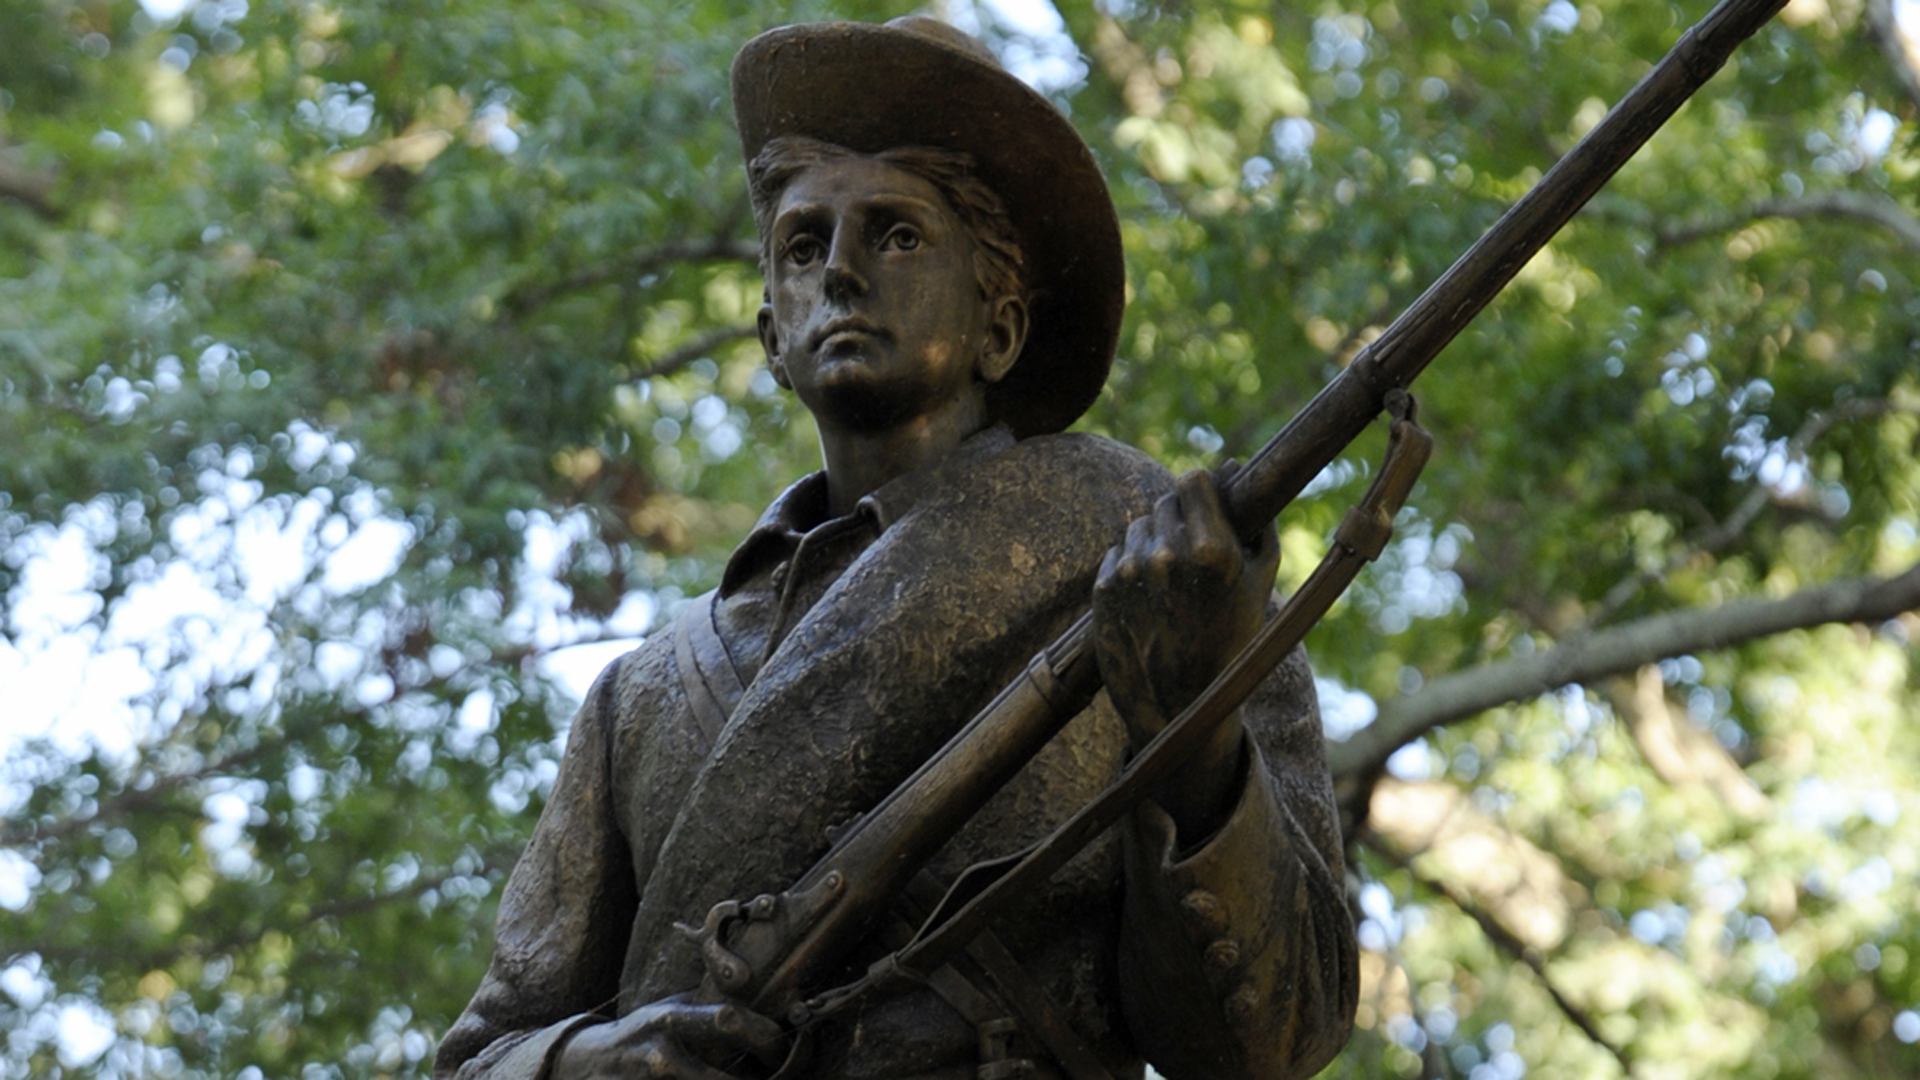 A Confederate statue, coined Silent Sam, is guarded by two layers of fence, chain and police on the campus of the University of Chapel Hill on August 22, 2017 in Chapel Hill North Carolina. (Credit: Sara D. Davis/Getty Images)